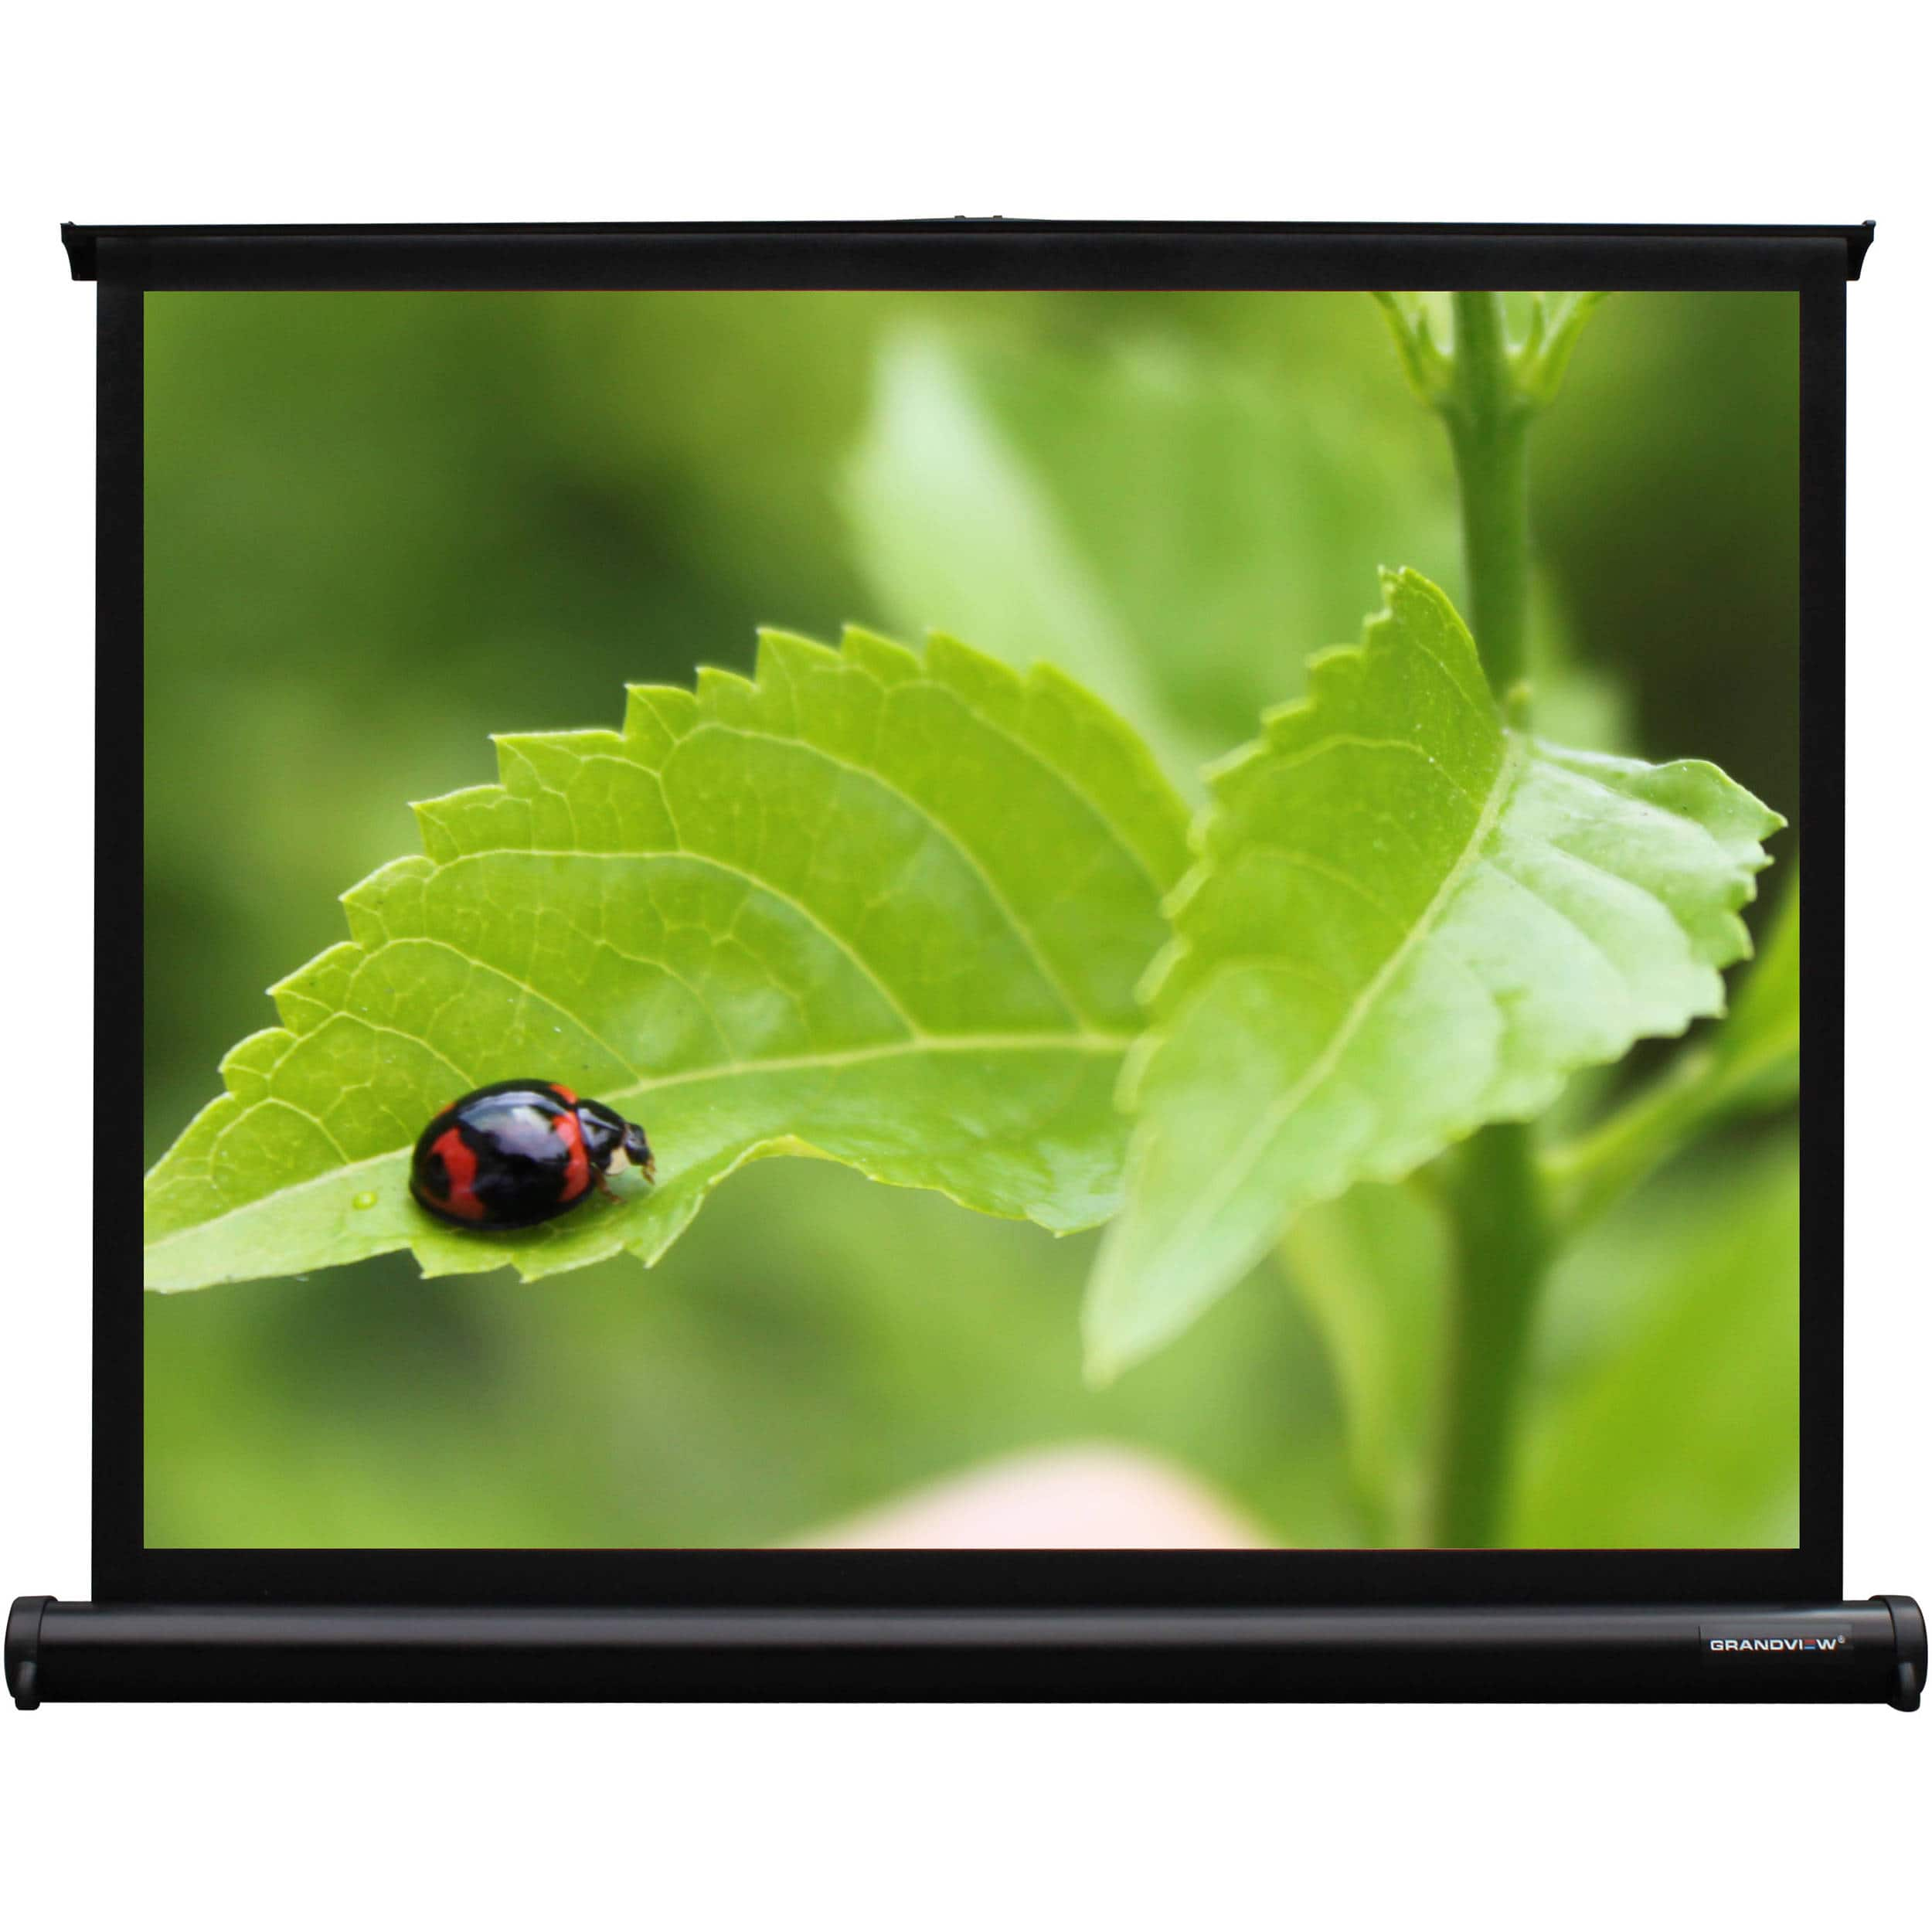 "GrandView  PT-UW040VWM4B U-Work 24 x 32"" Table-Top Projection Screen $59.95 @ B&H Photo w/ Free Shipping"